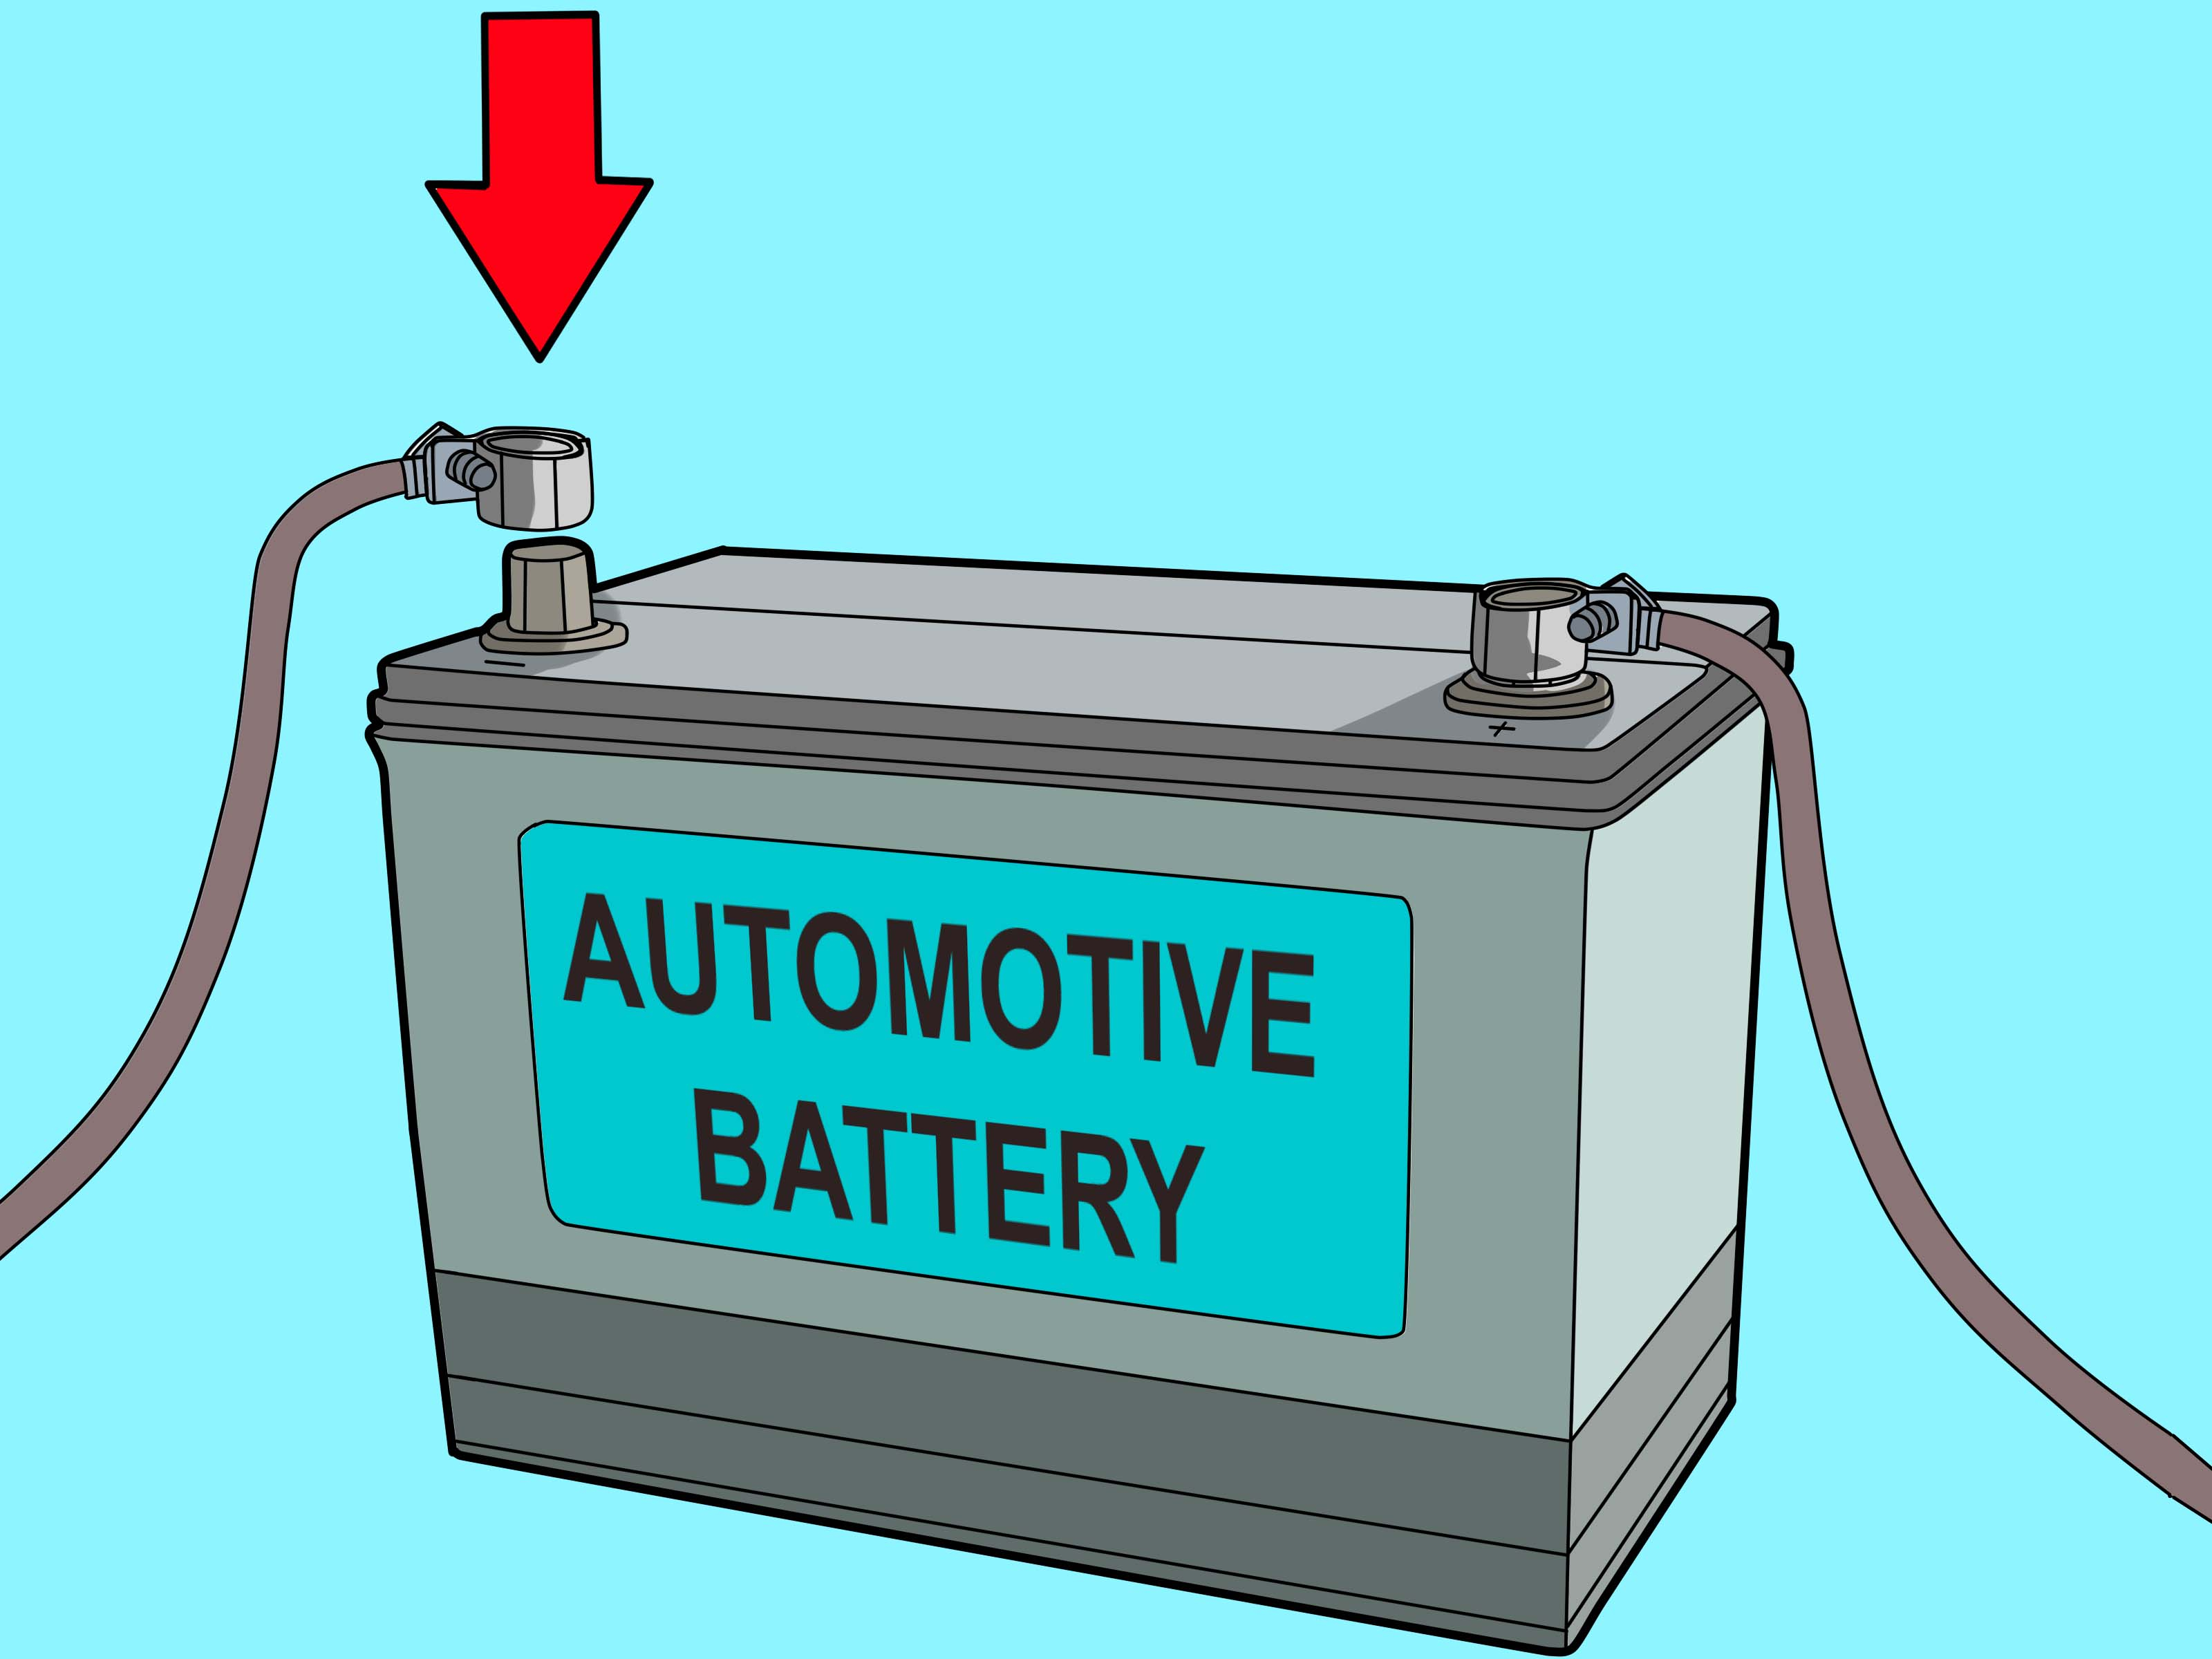 How To Install A Car Volt Amp Gauge (With Pictures) - Wikihow - Ampere Gauge Wiring Diagram